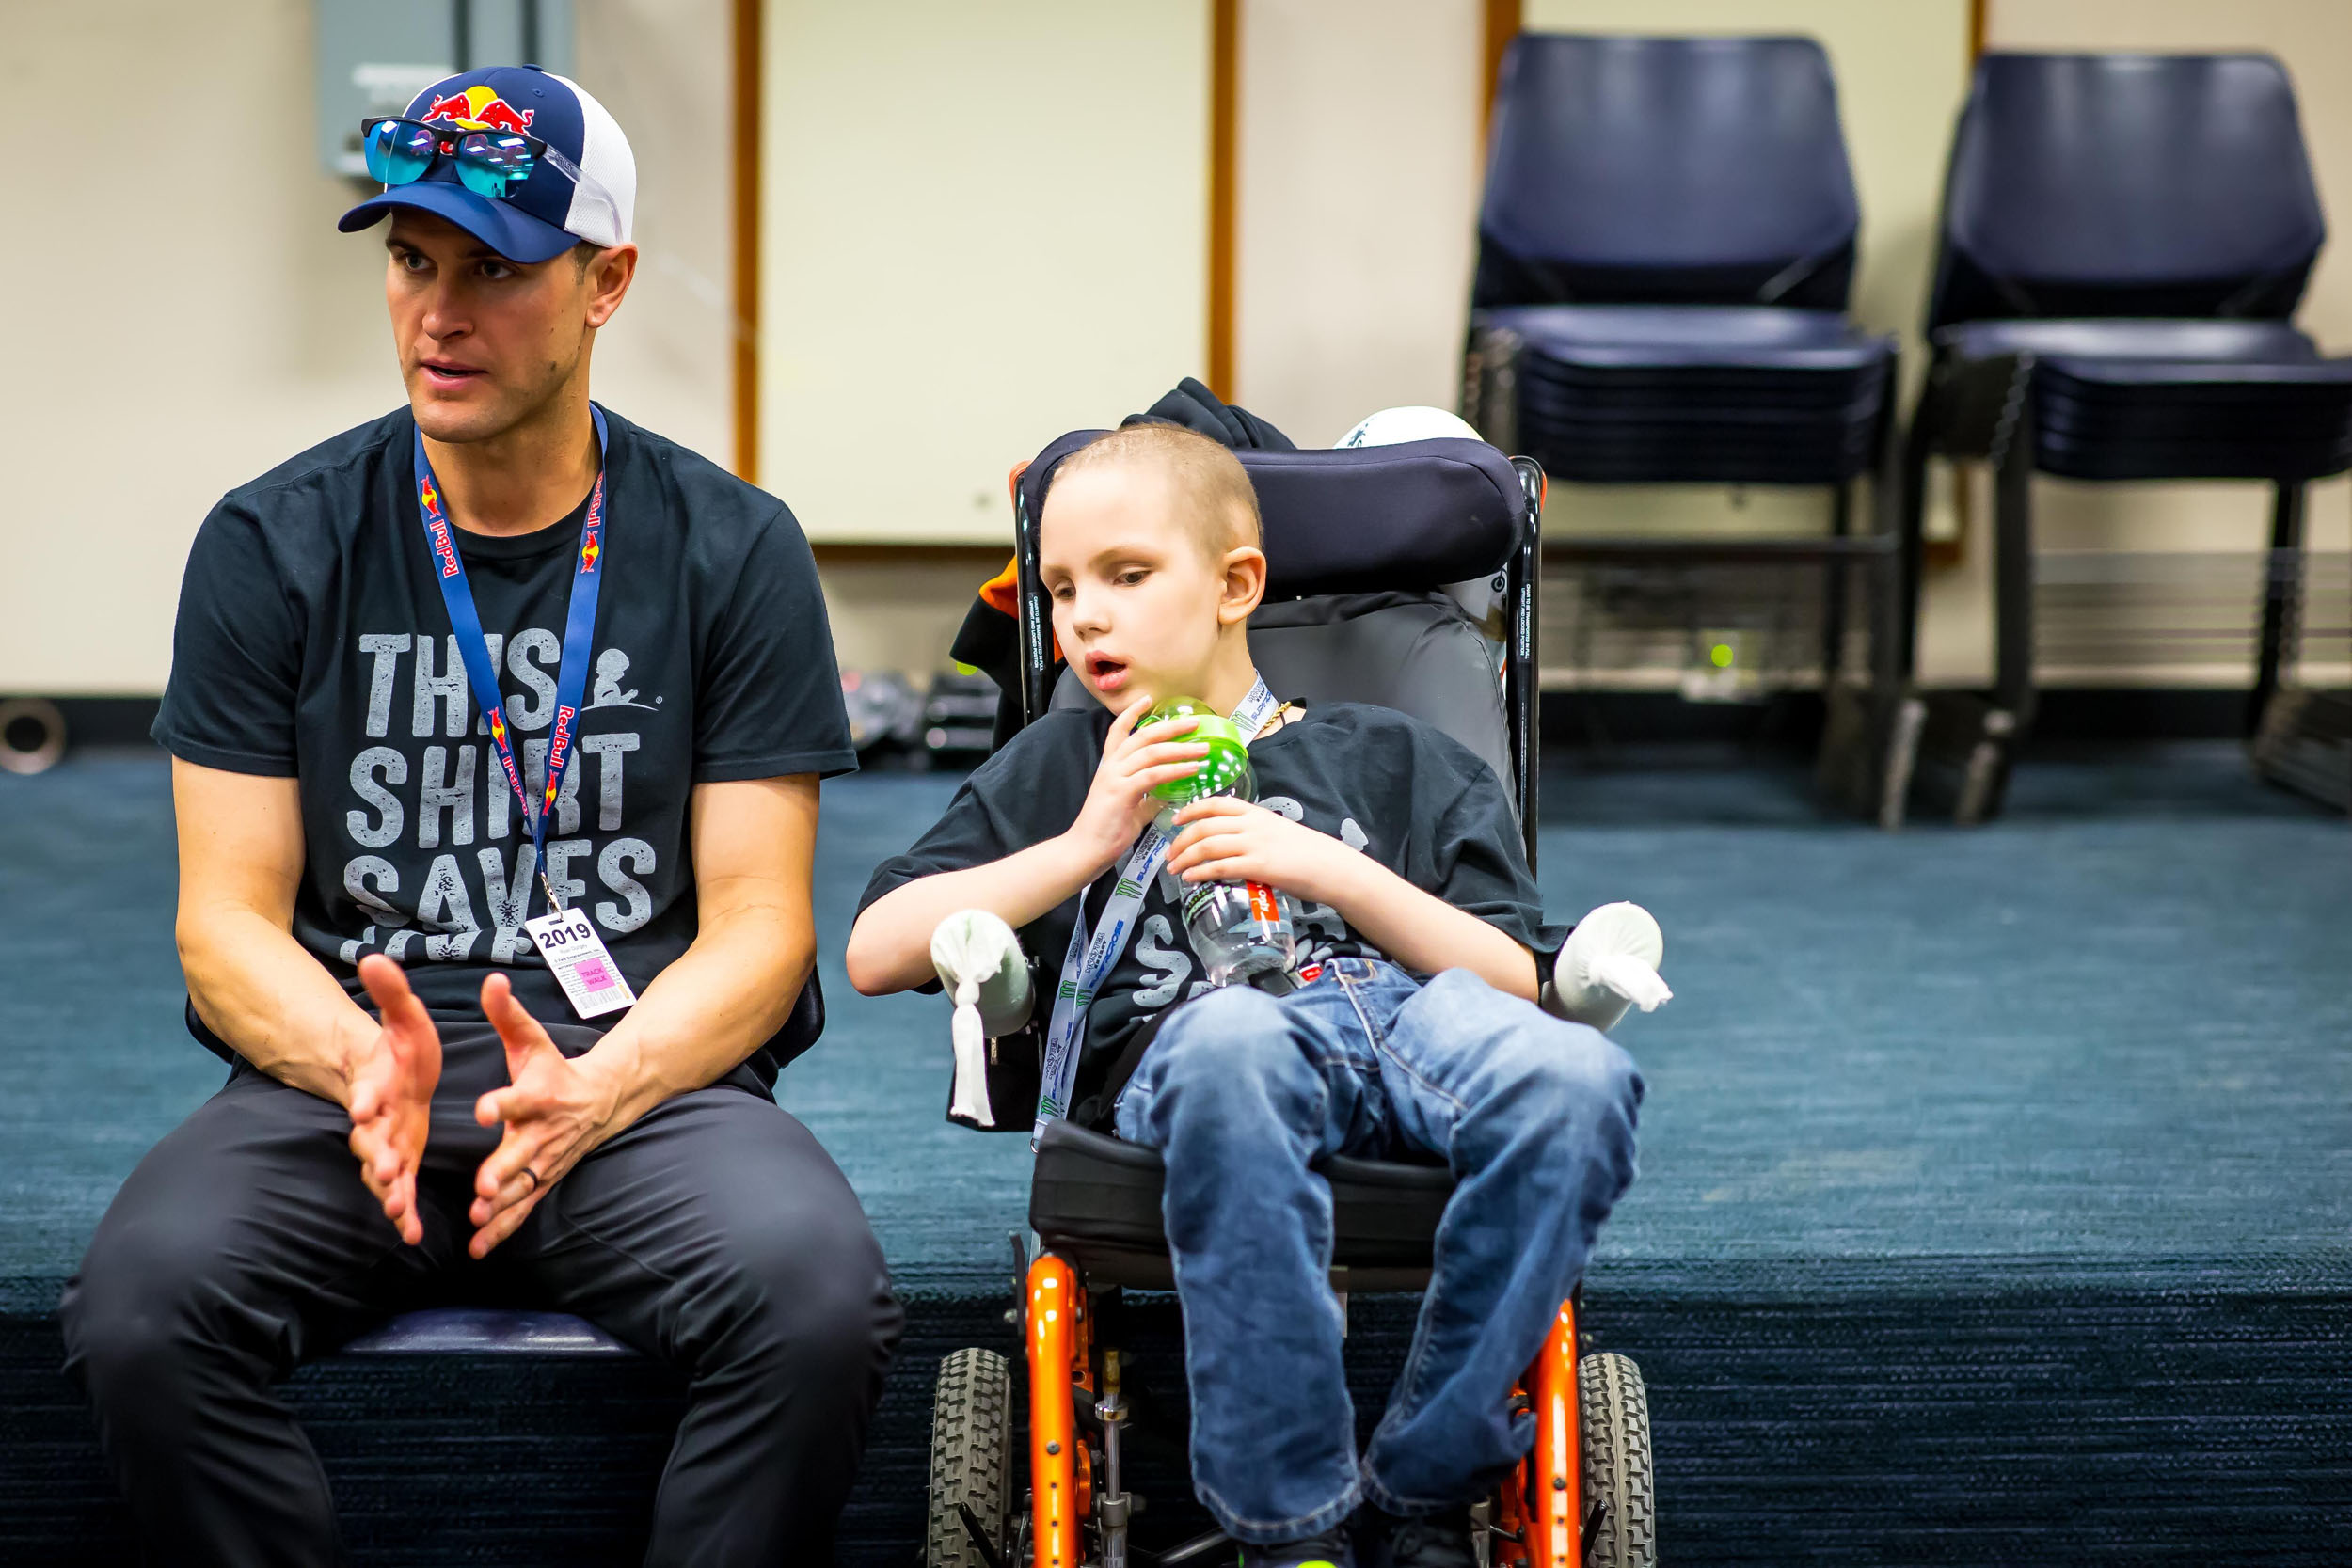 Ryan Dungey speaking to media at Nissan Stadium in Nashville with St. Jude patient and super fan Gabe